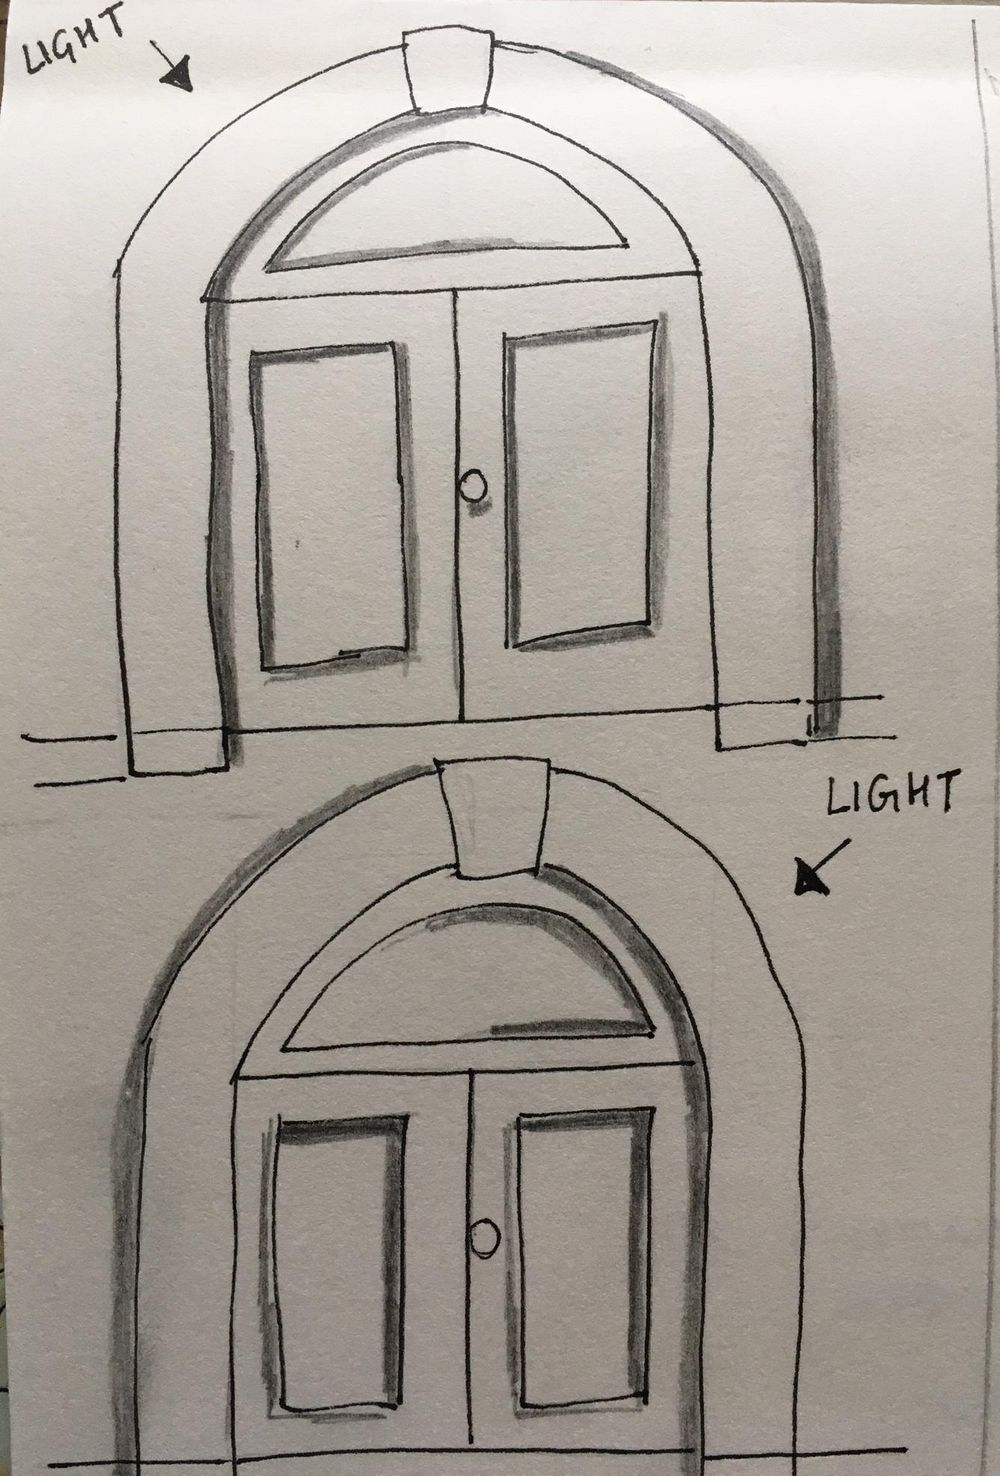 Every door tells a story! - image 1 - student project